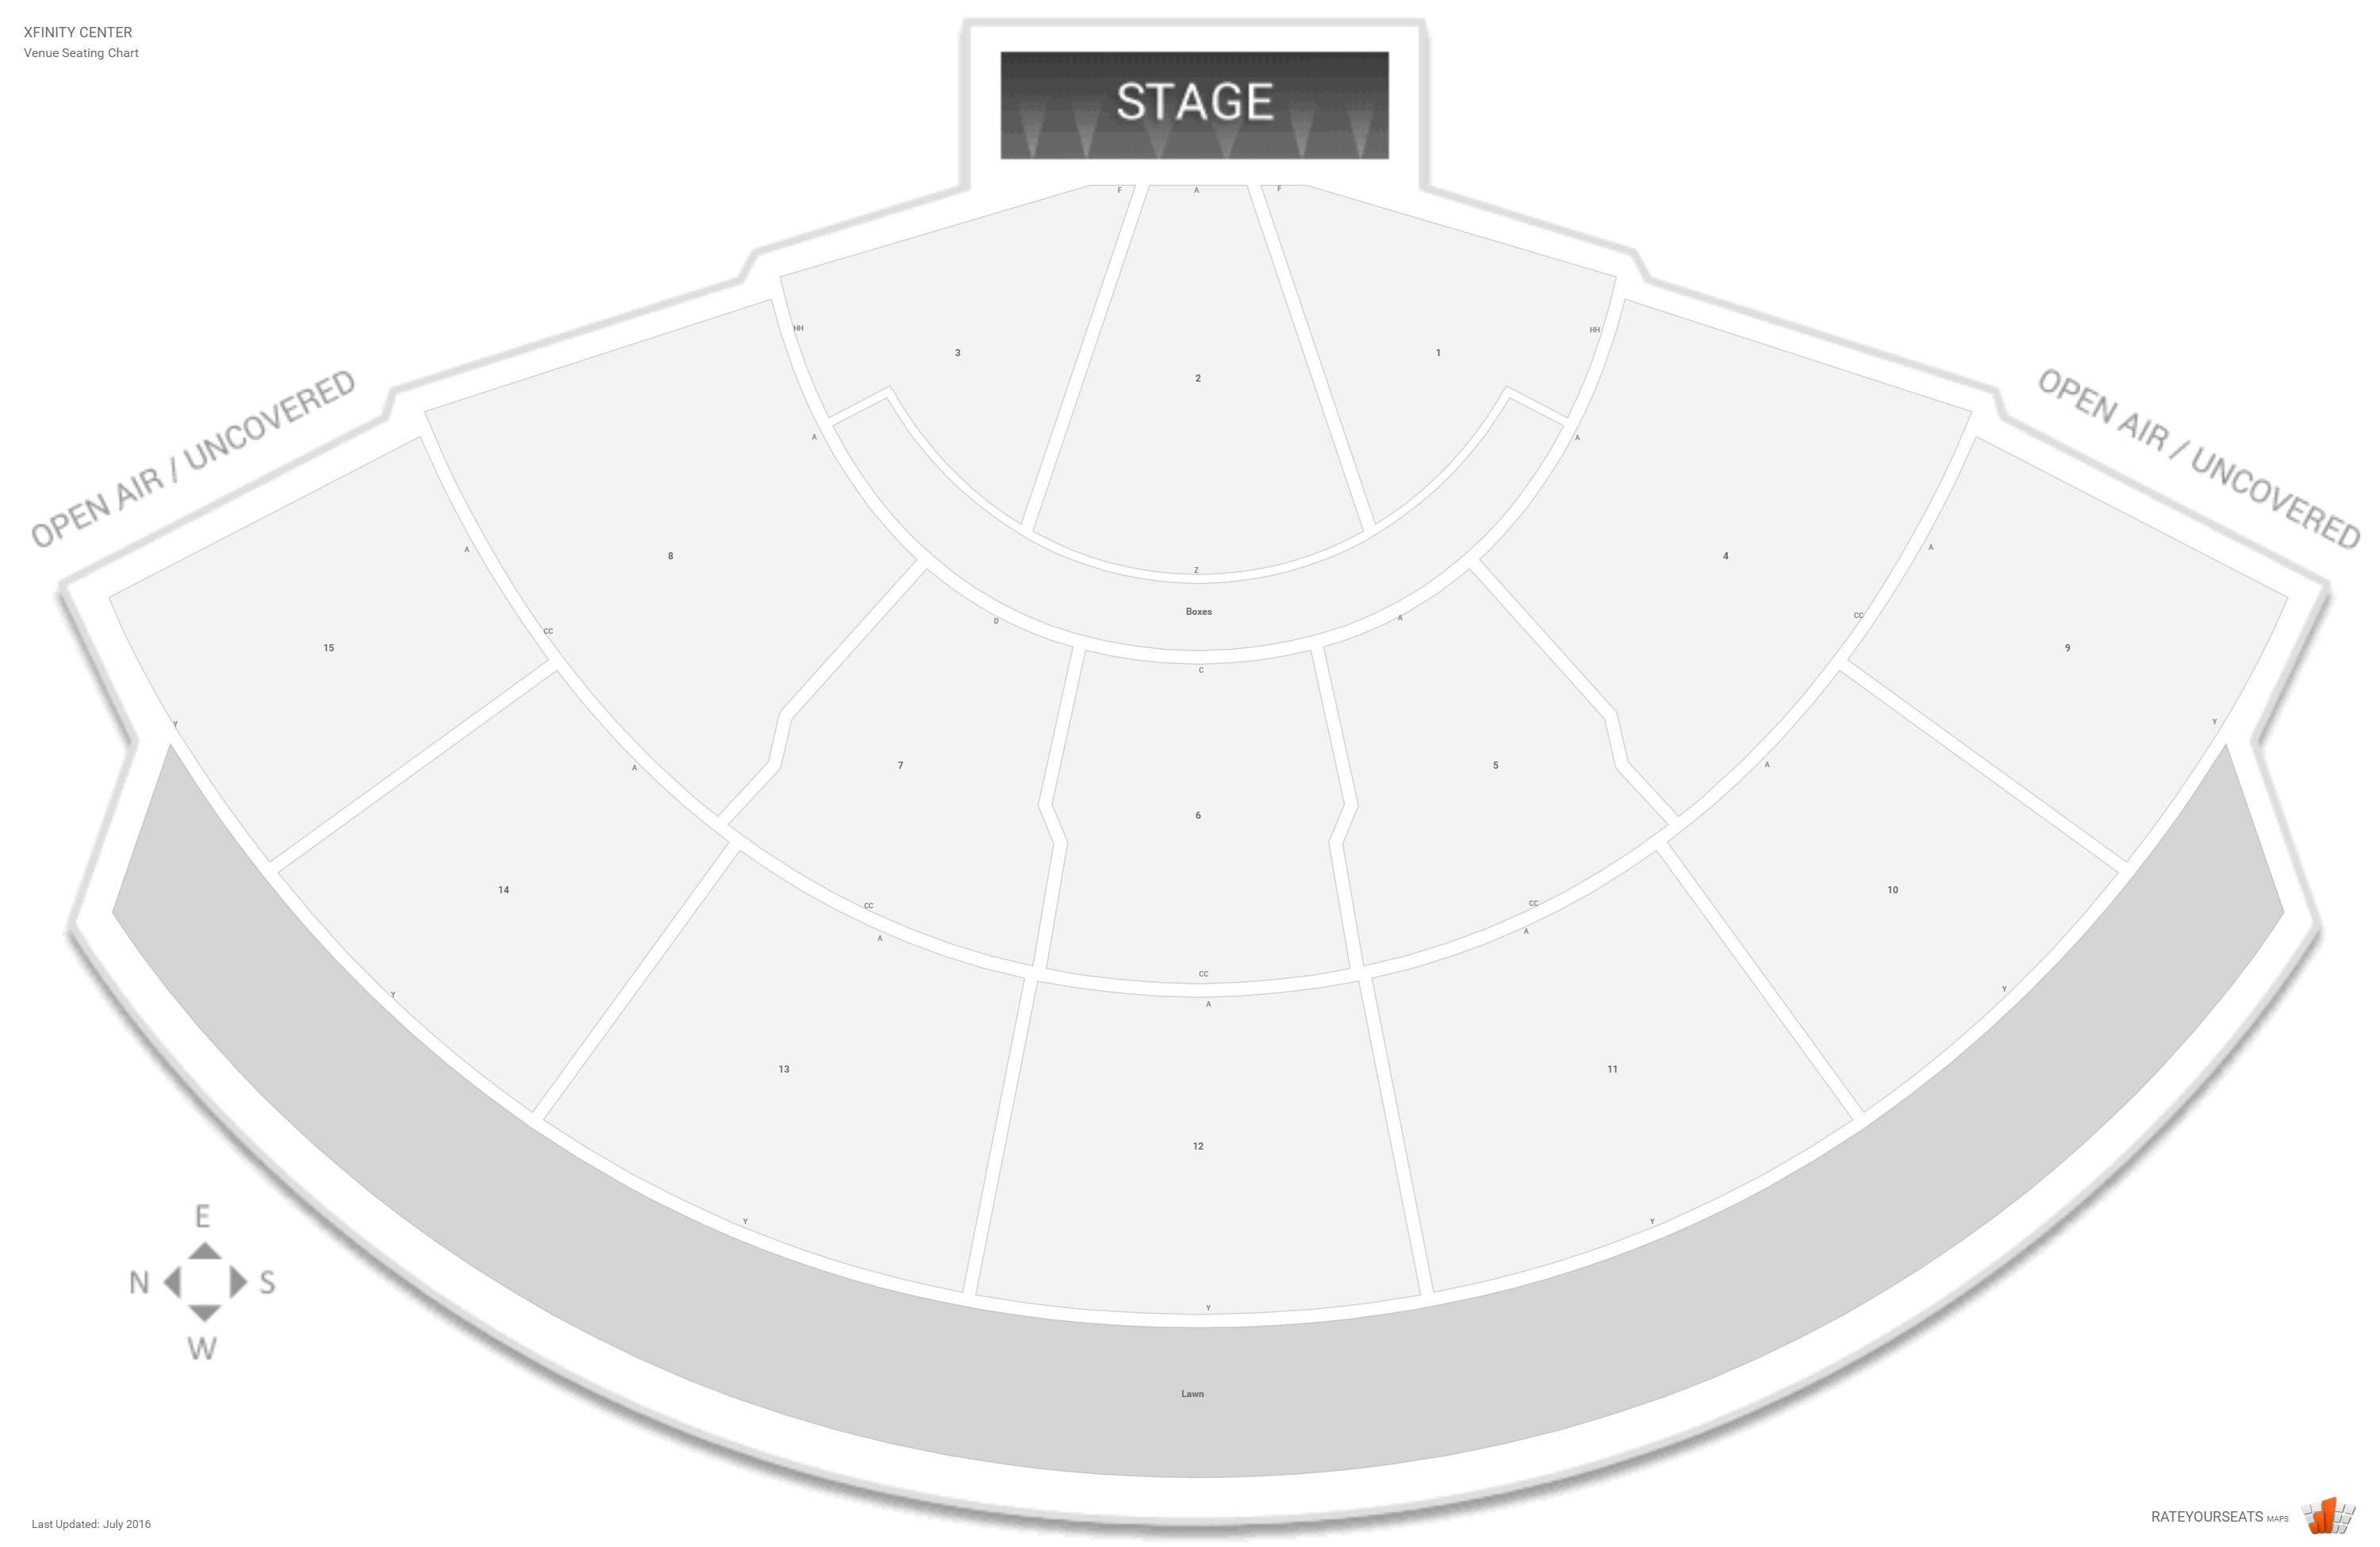 Xfinity Center Seating Guide